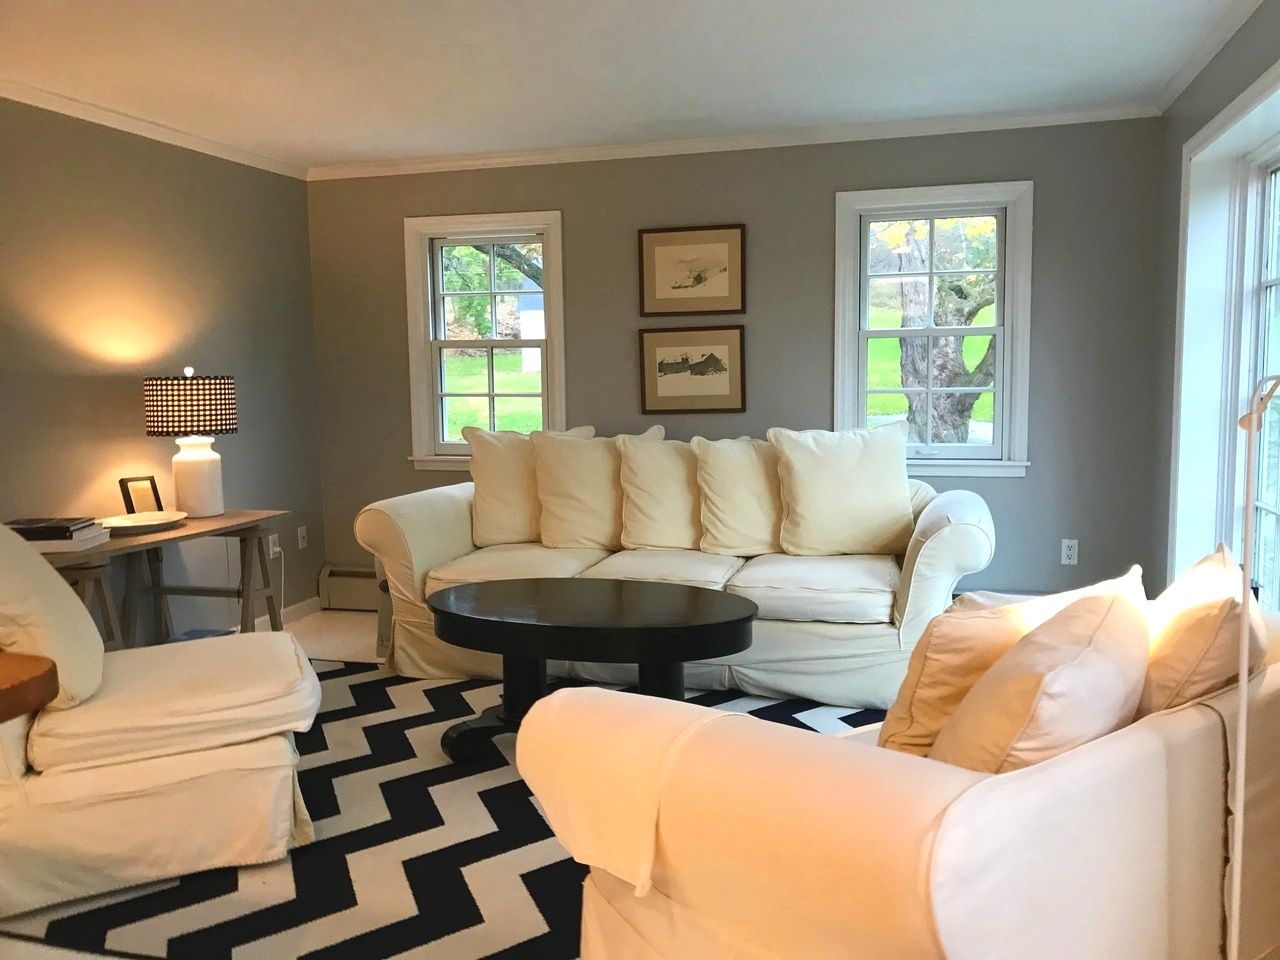 Spacious second floor two-room suite with campus view. king bed, private bathroom with combination shower/tub, living area, and galley kitchen (refrigerator, microwave, dishwasher).